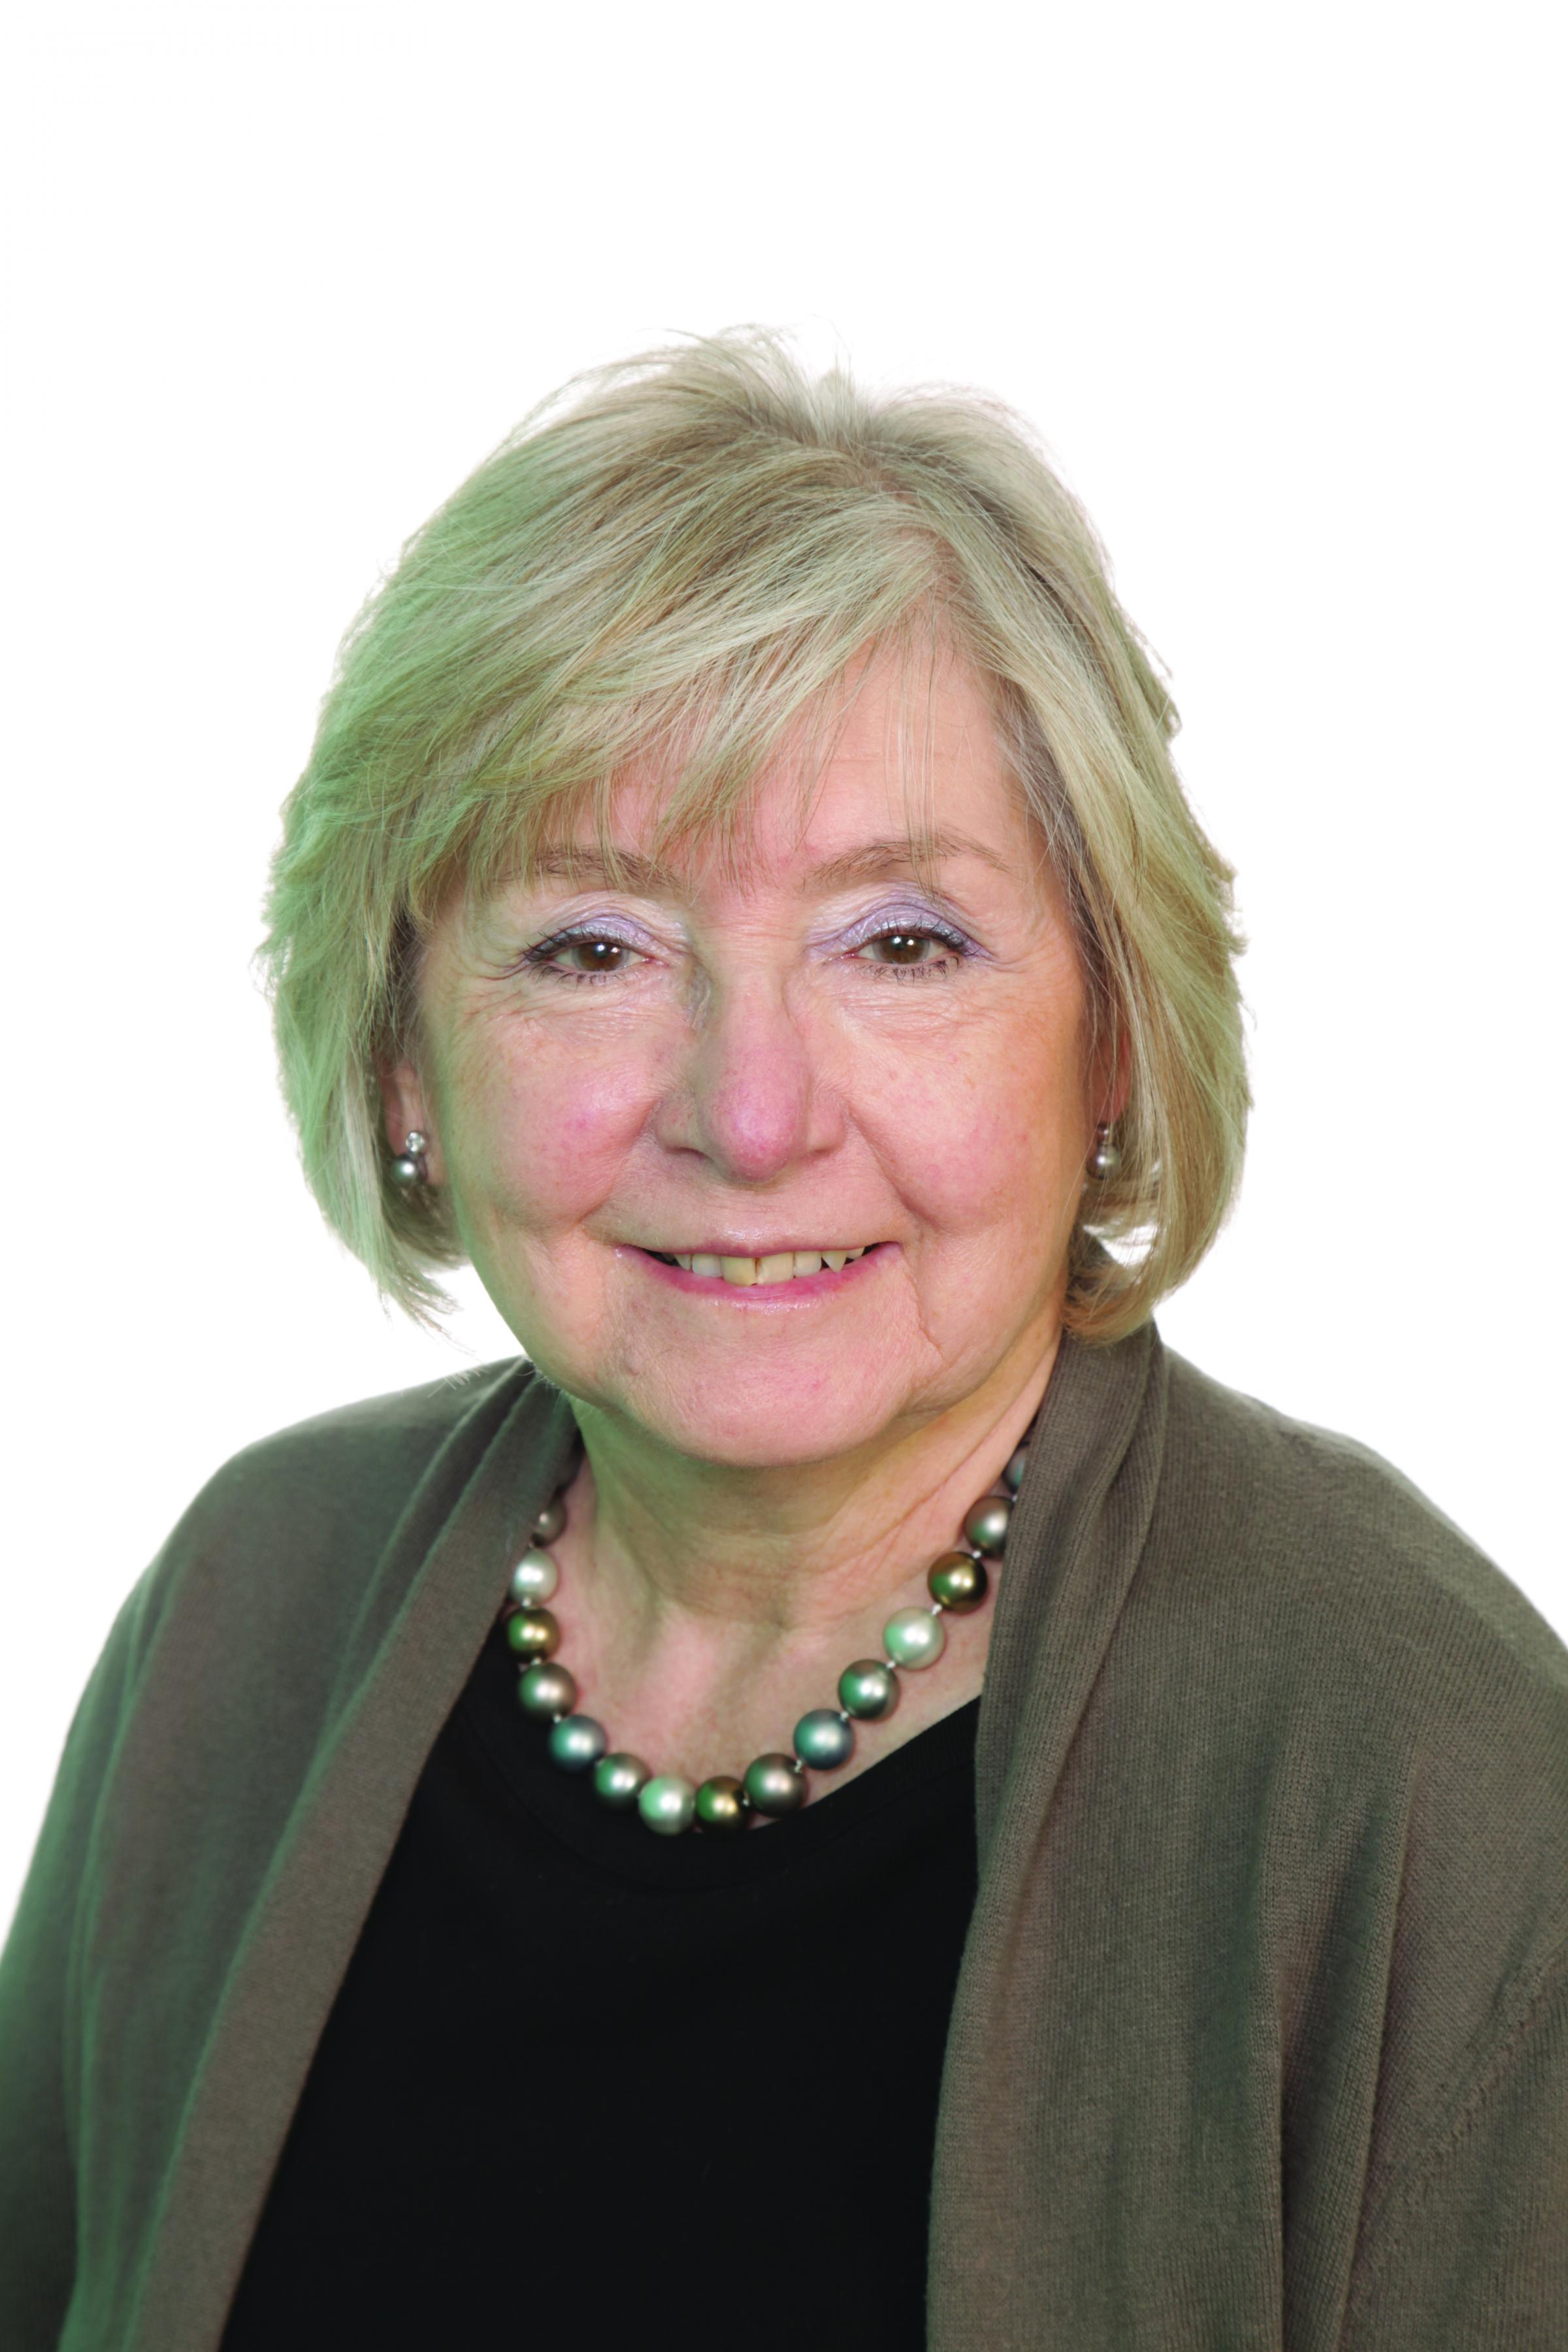 Bicester town councillor and Cherwell District councillor Jolanta Lis.